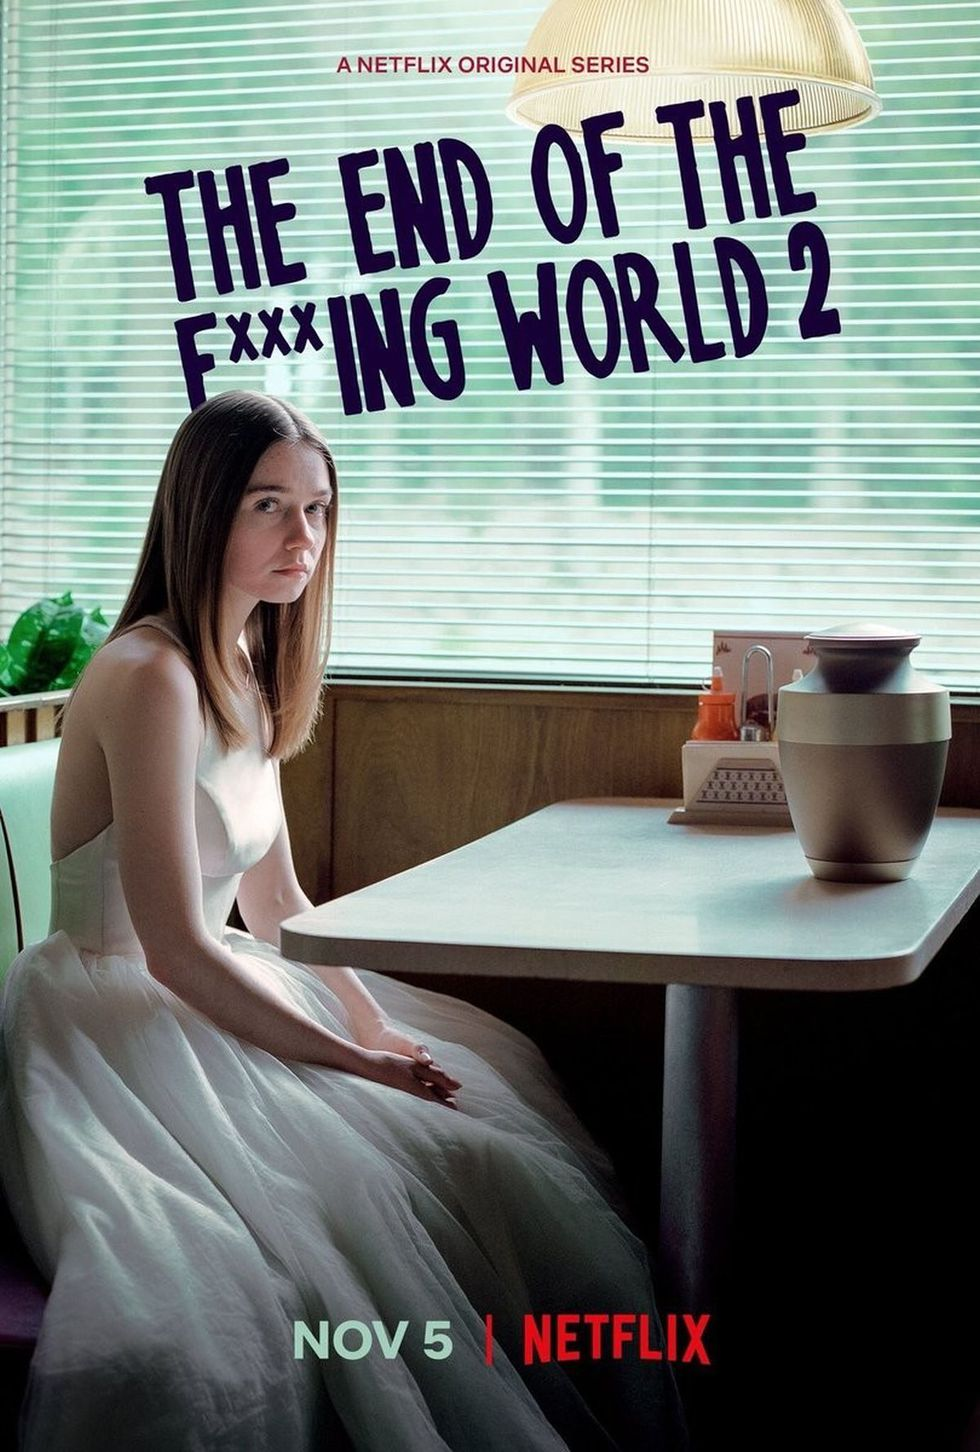 Cartel de The end of the fucking world